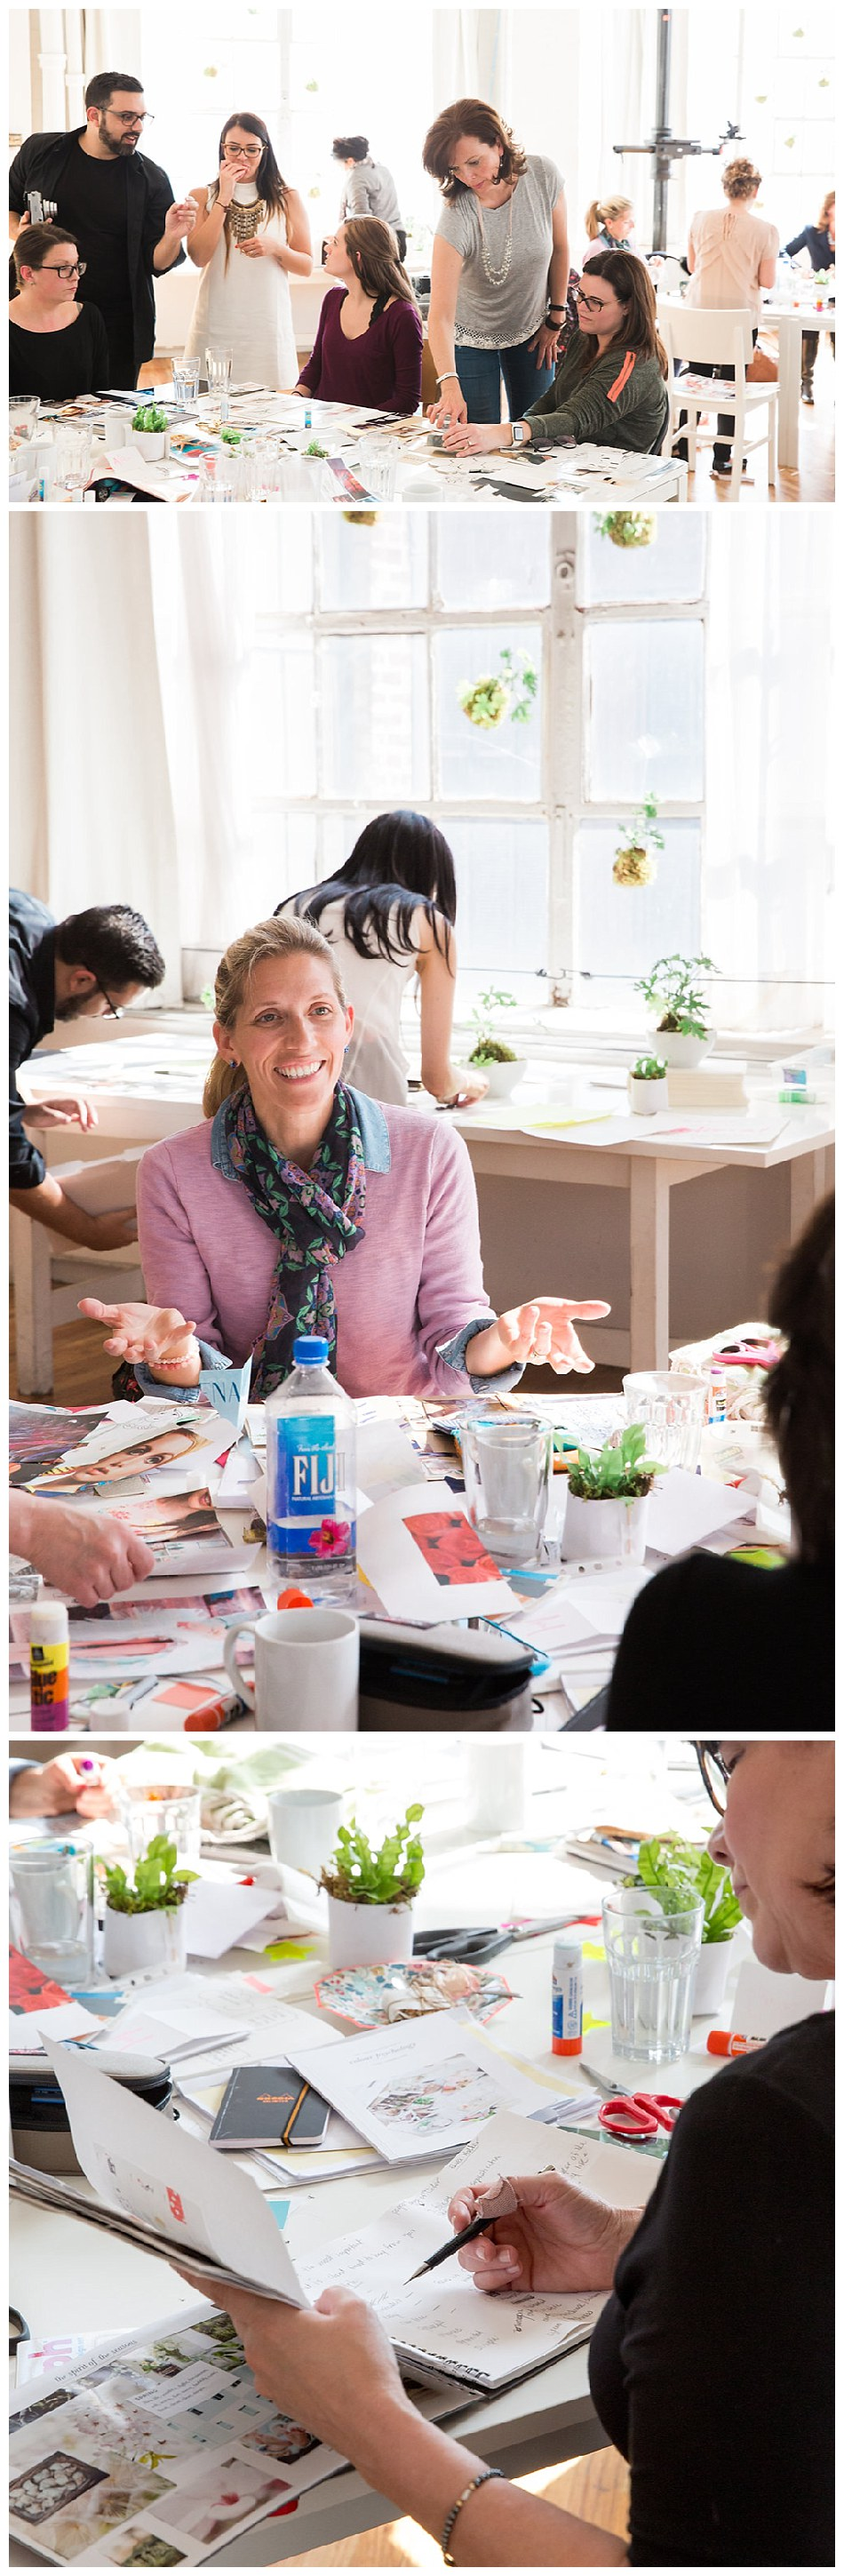 The Brand Stylist Colour Psychology Workshop New York Fiona Humberstone_0053